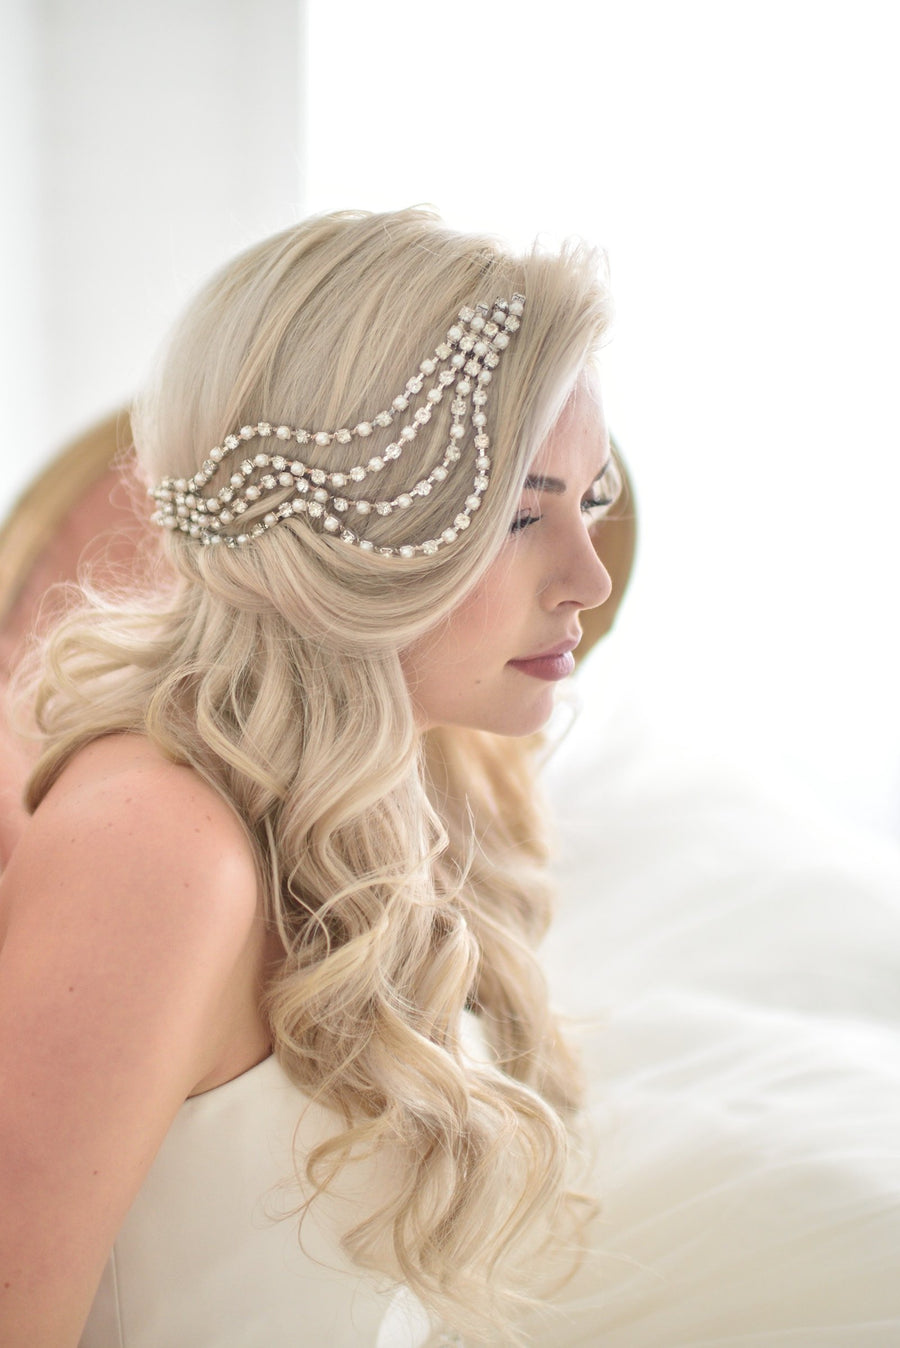 Ripple Headpiece in Gold - Style #201